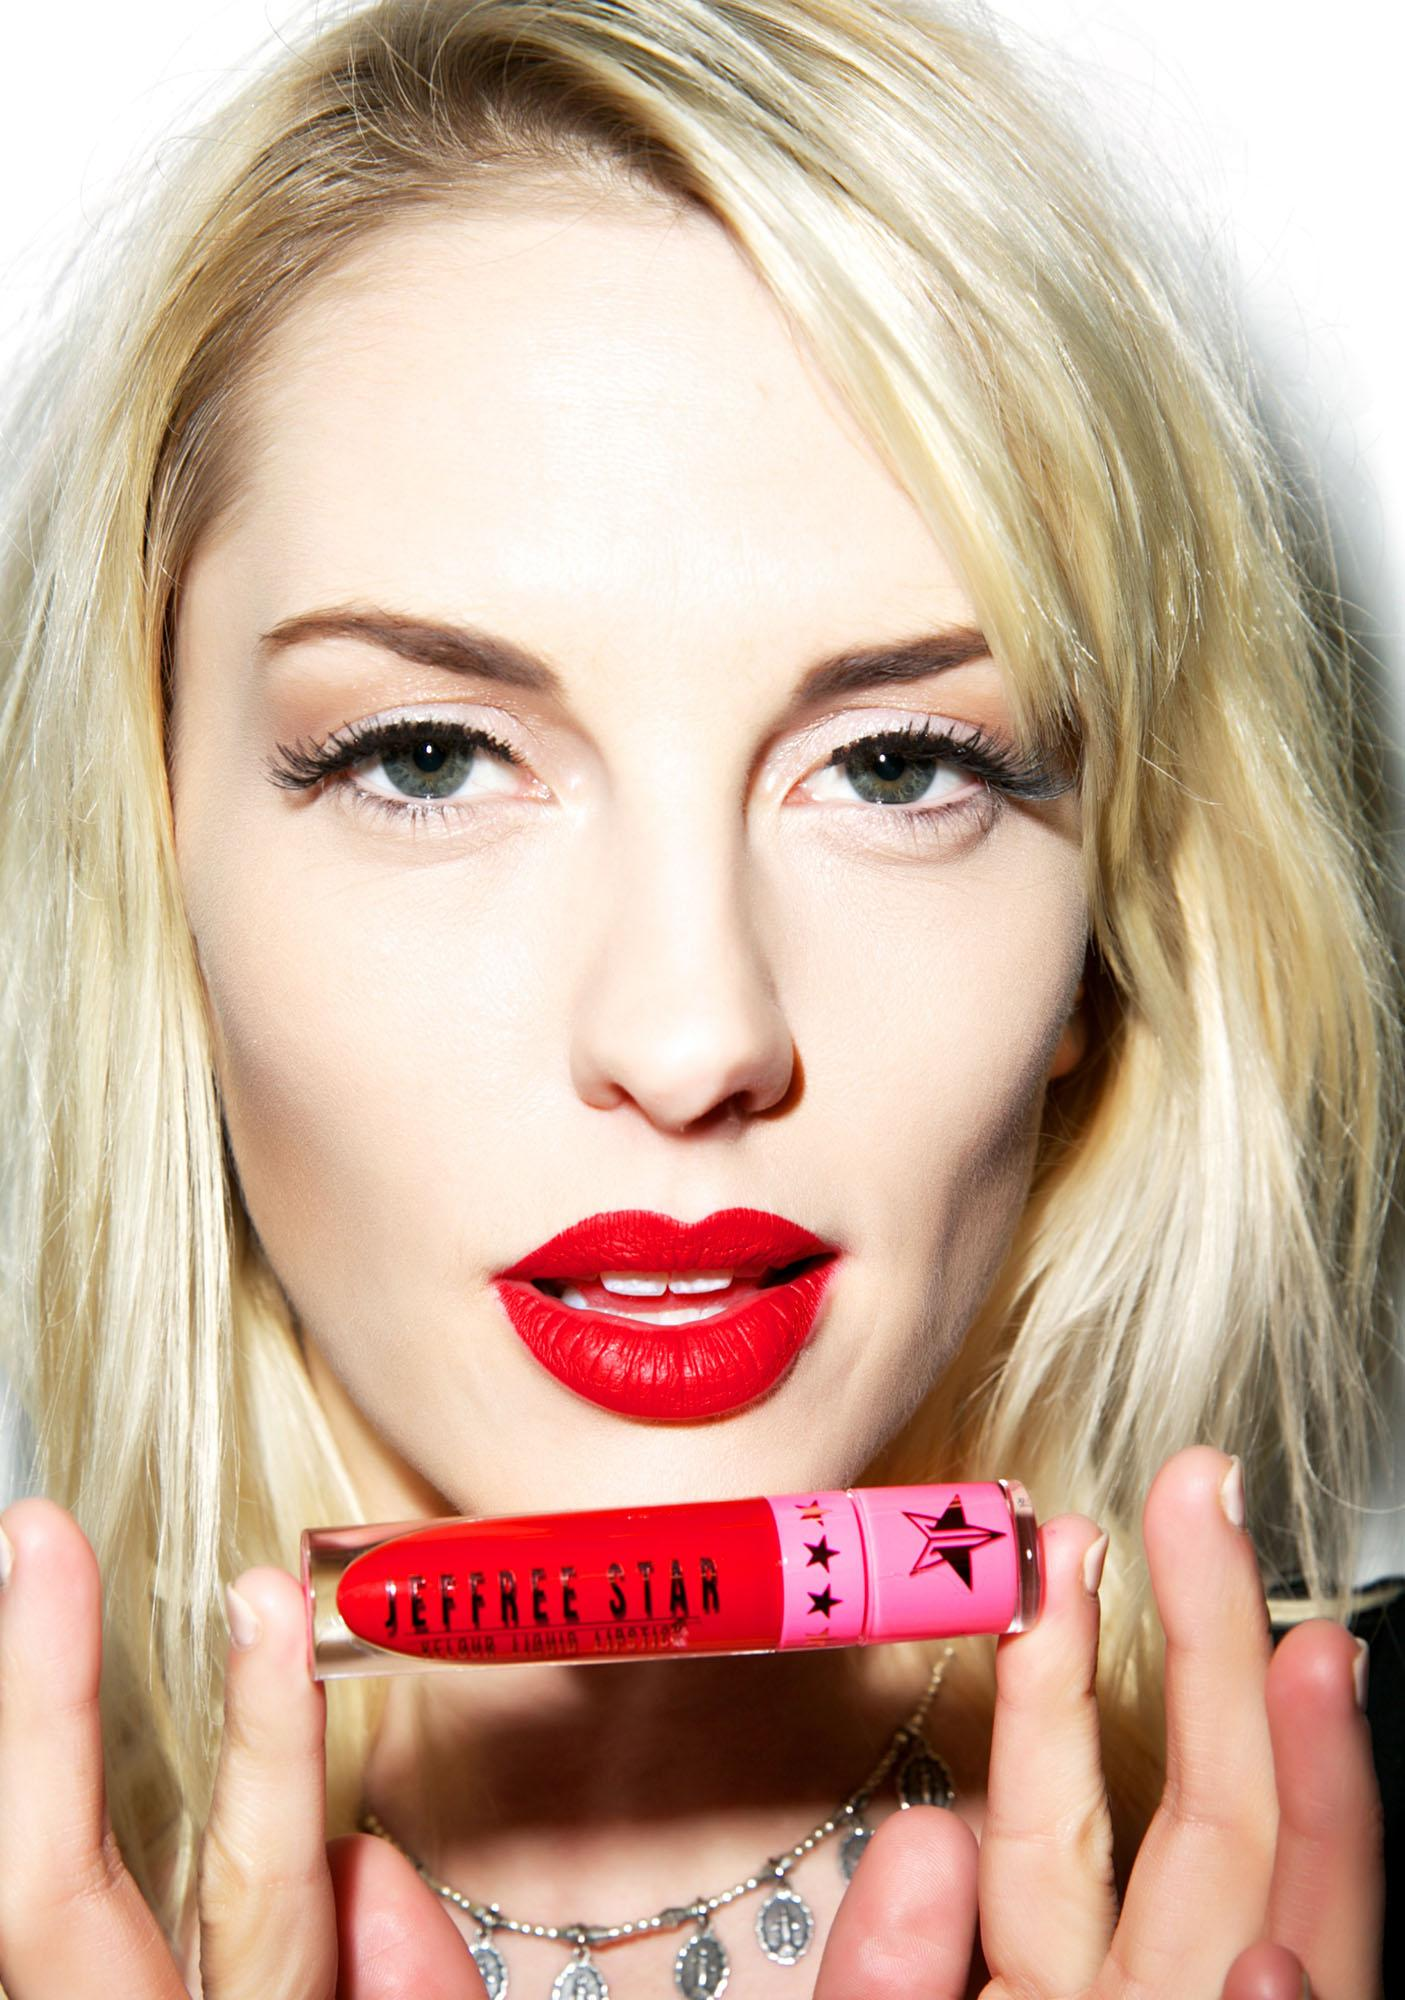 SON JEFFREE STAR VELOUR LIQUID LIPSTICK - MÀU REDRUM